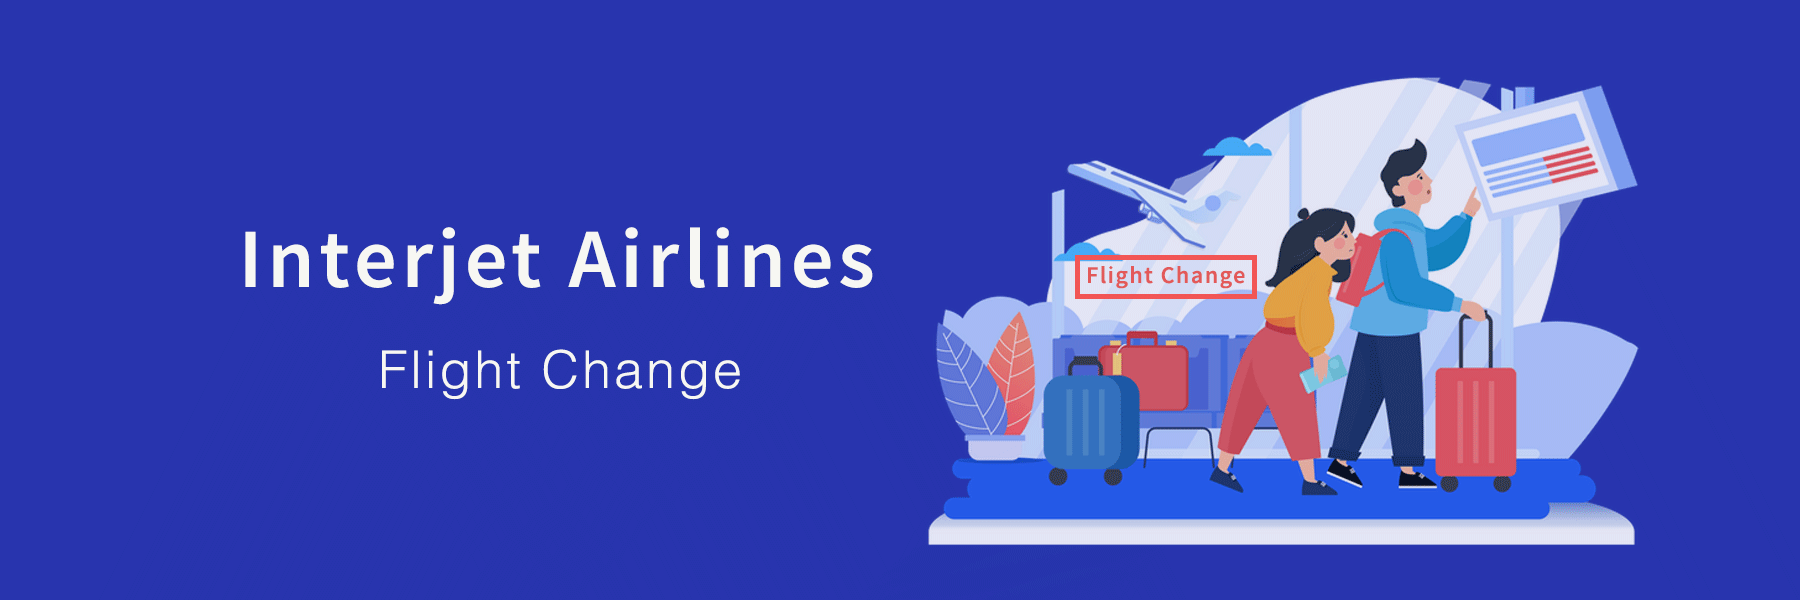 How to Change Flight in Interjet Airlines?